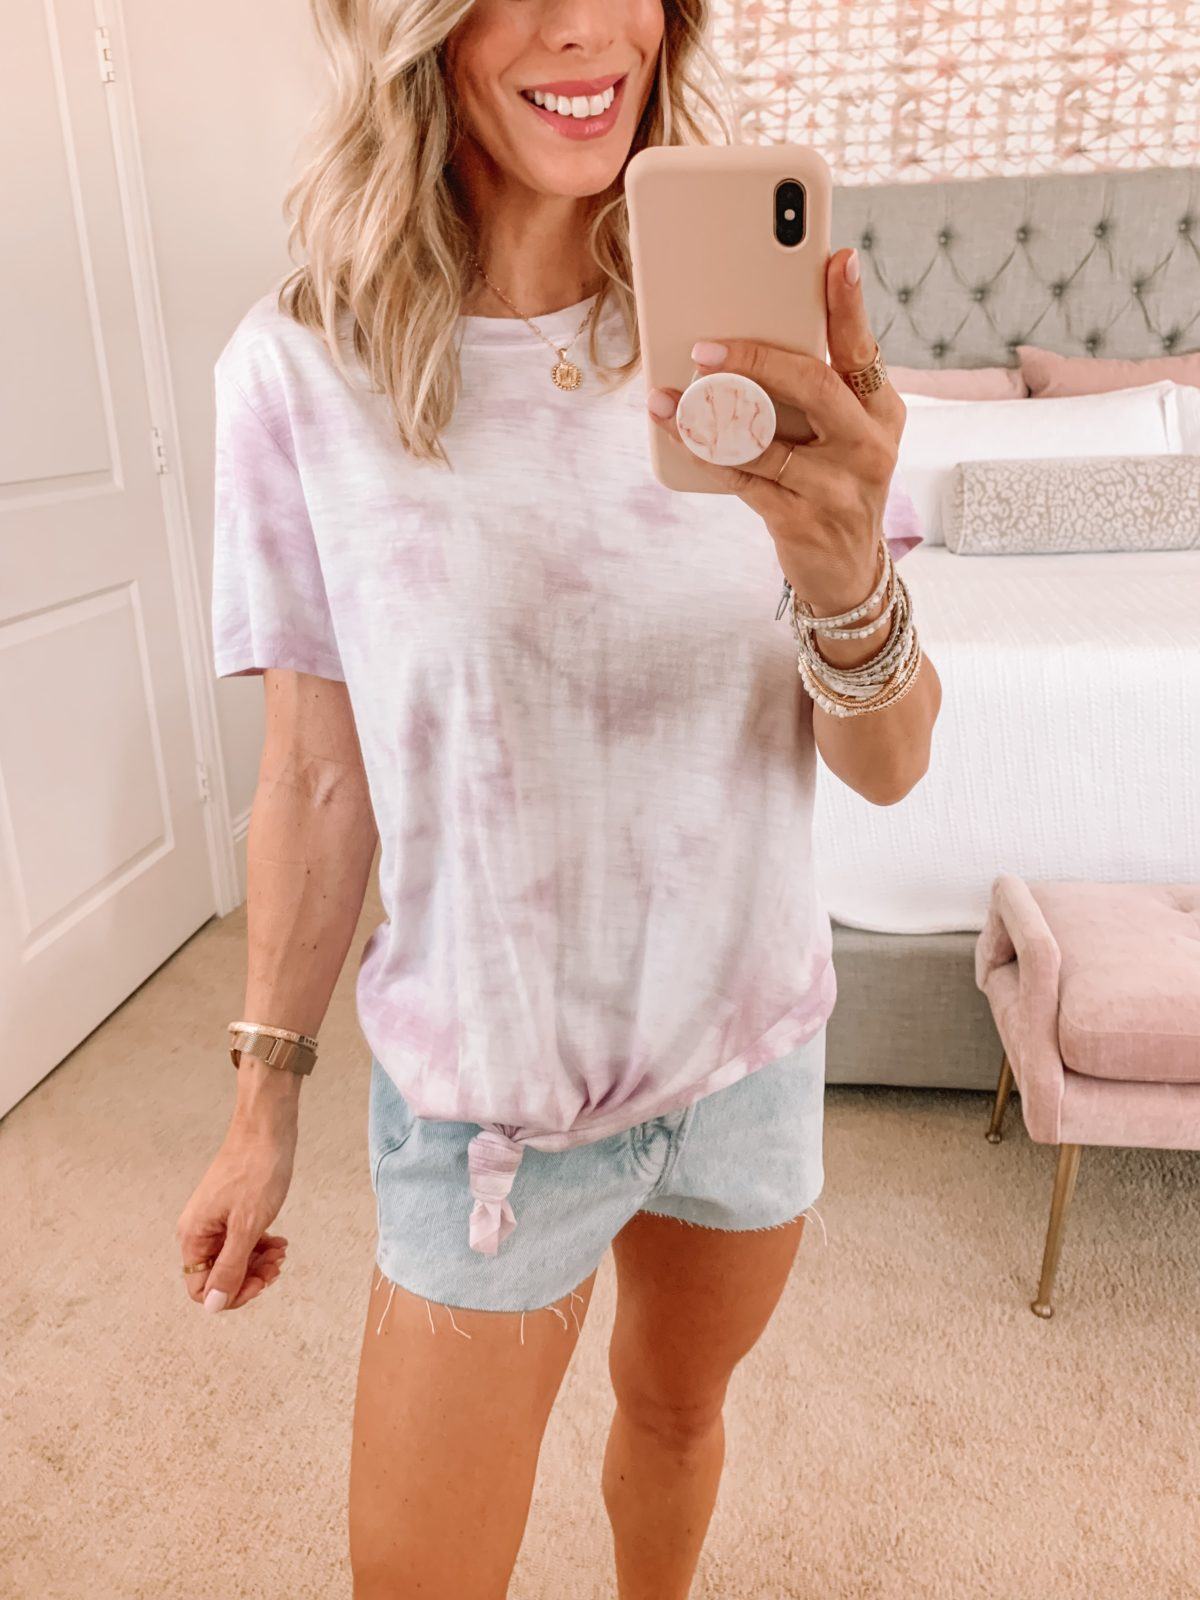 Dressing Room Finds, Tie Dye Tee and Shorts with Sandals